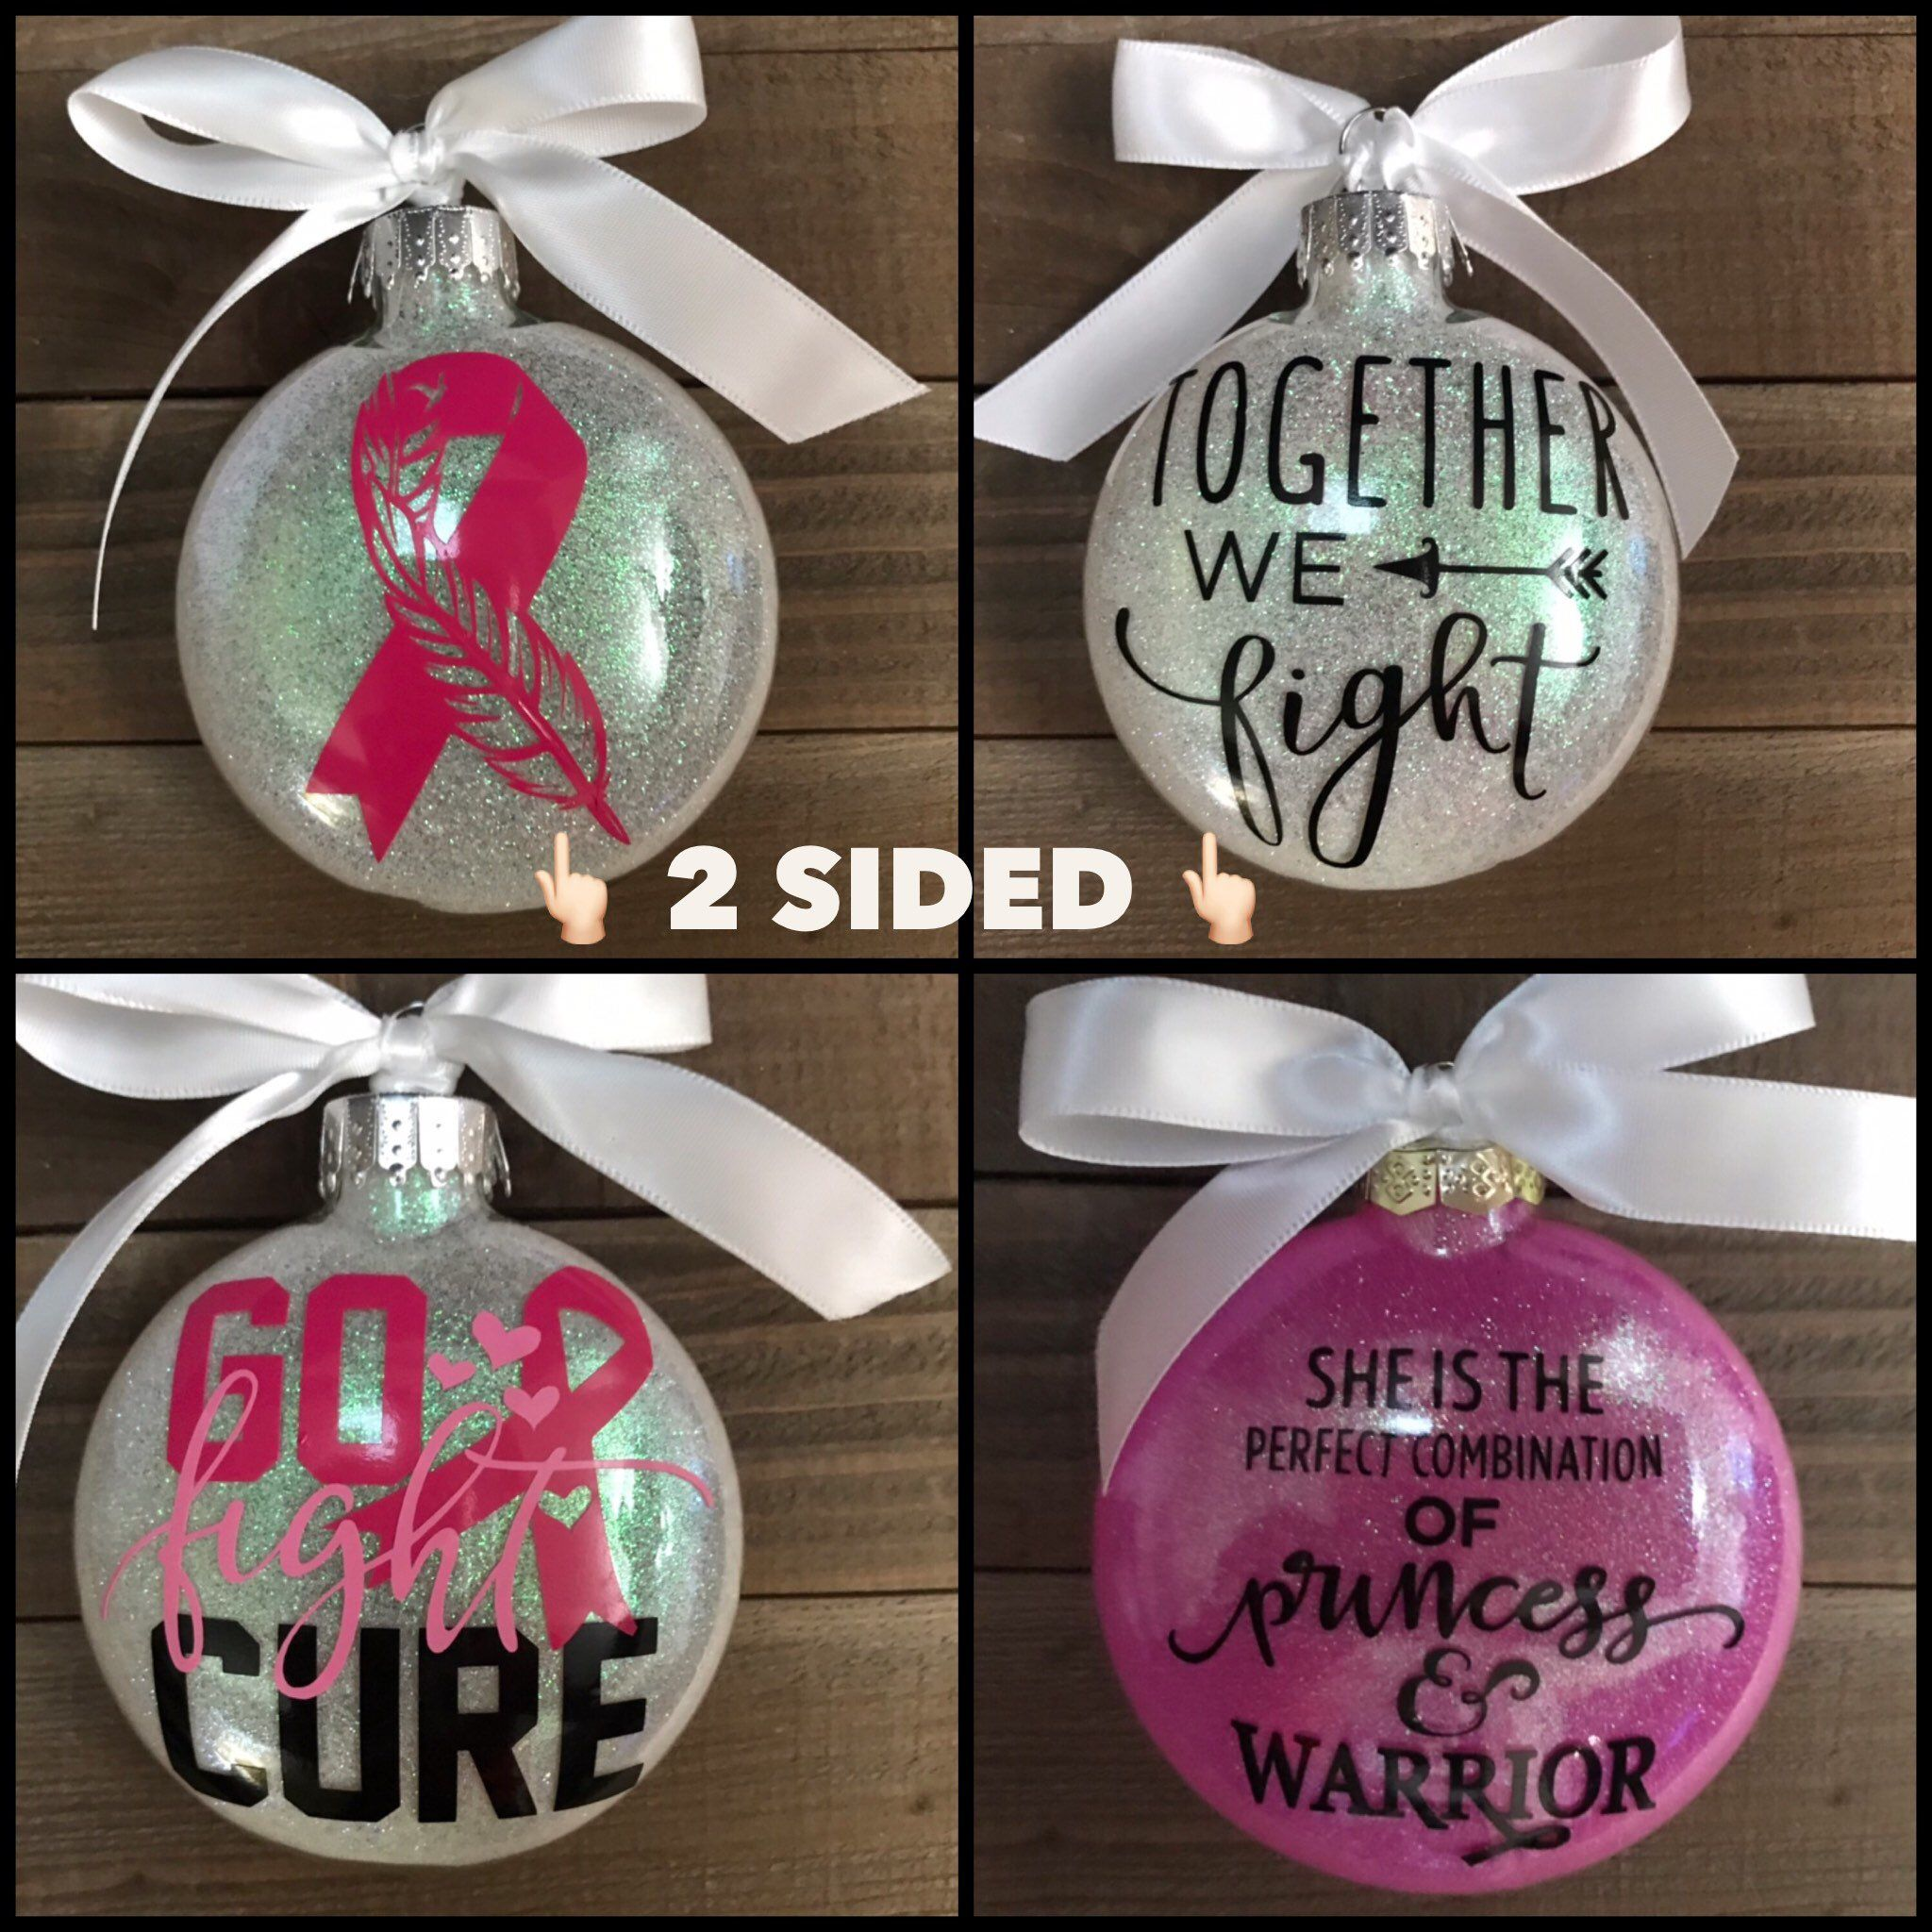 Excited to share this item from my #etsy shop: Breast Cancer , glass ornament, ornament, survivor, Christmas, Cancer survivor #pink #fight #cure #personalized #customized #christmas #ornaments #breastcancer #cancer #survivor #health #ornament #christmas